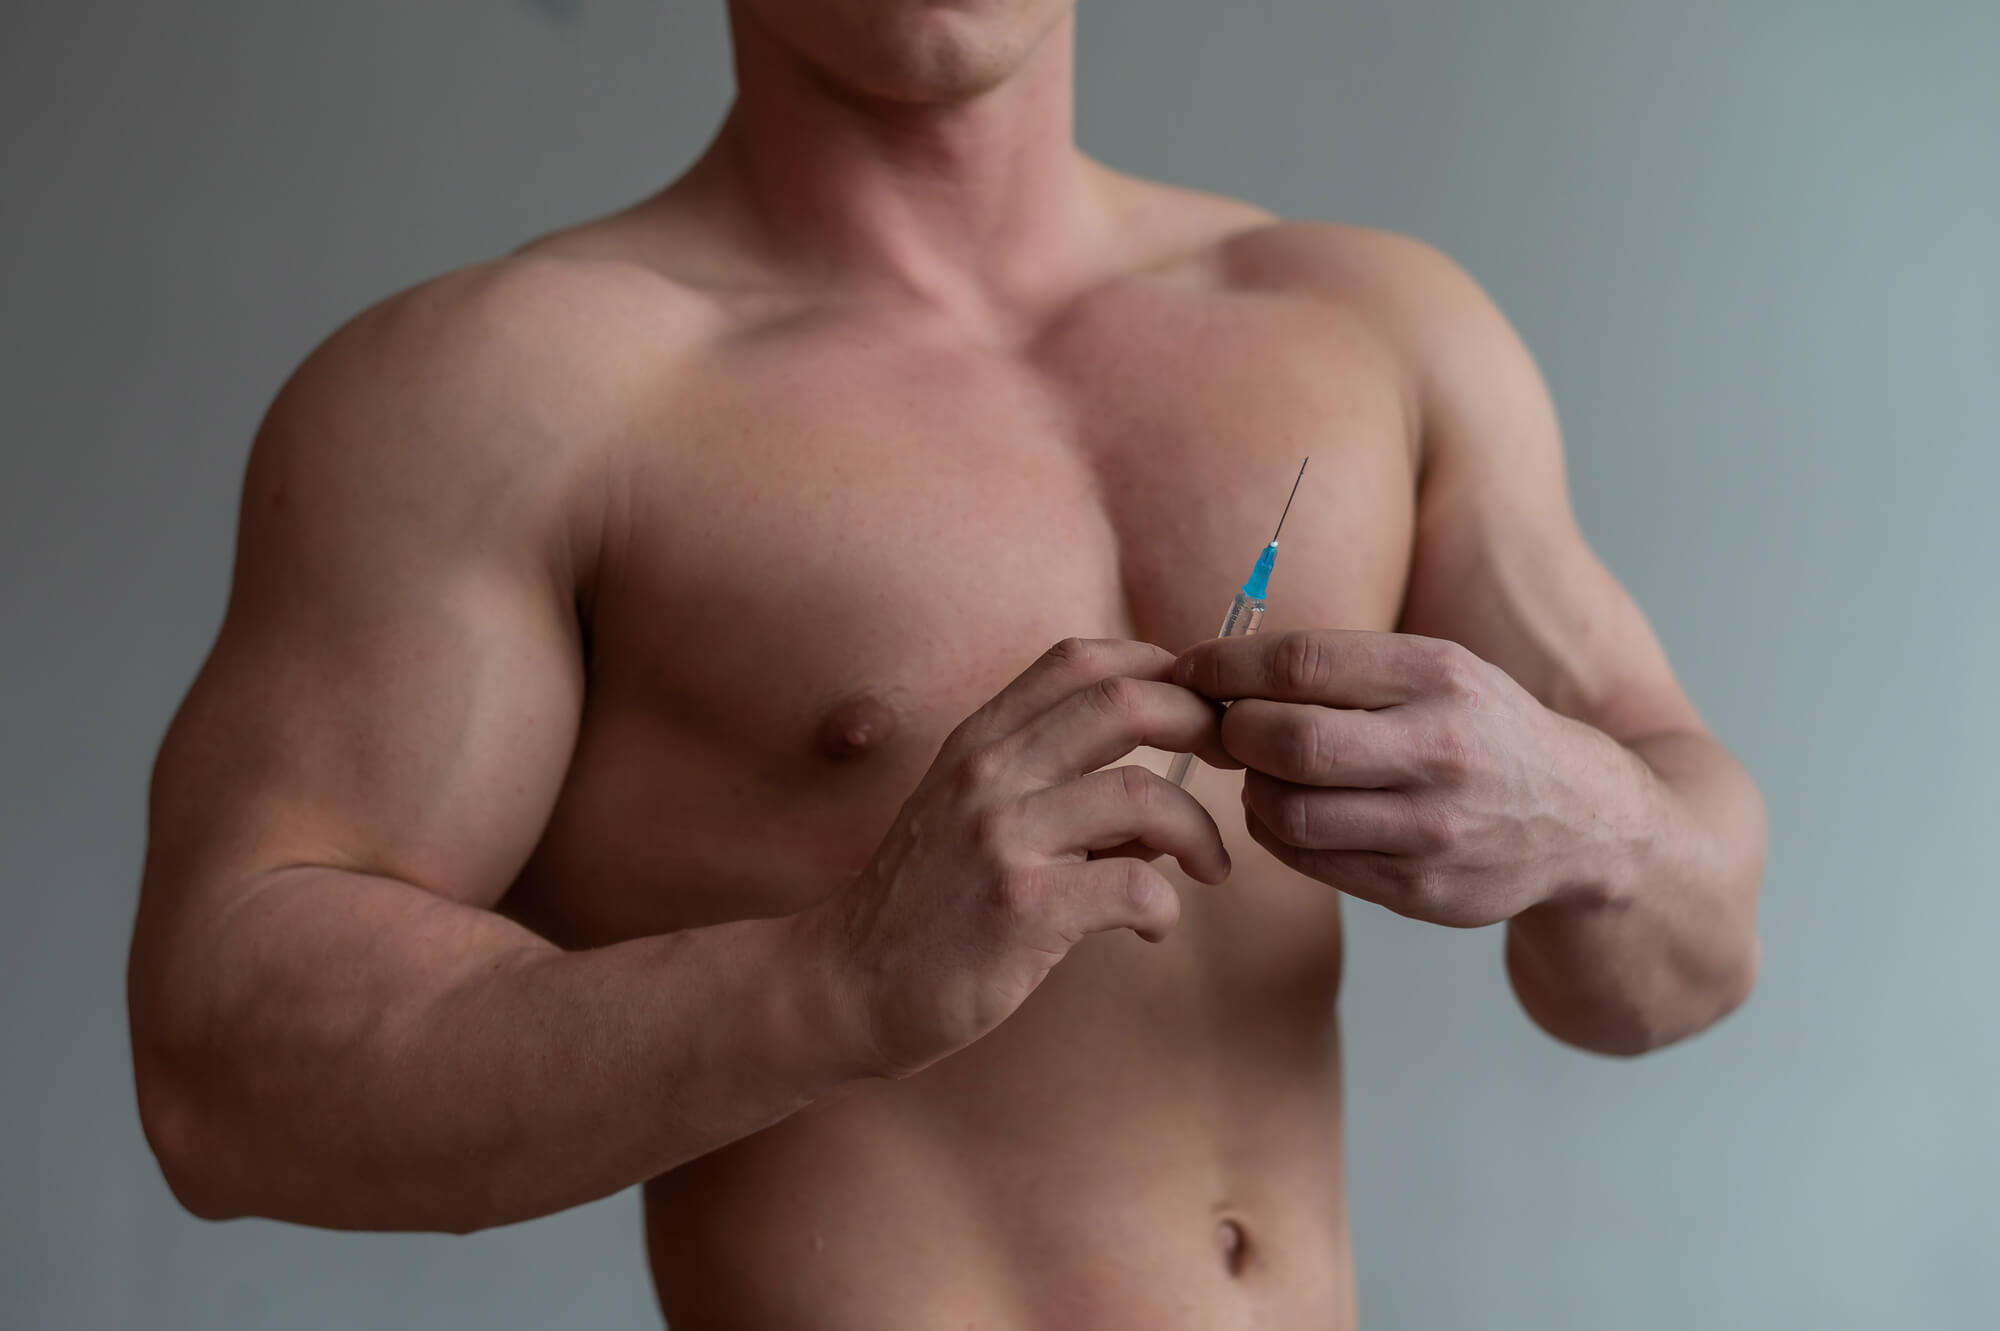 detail about steroids